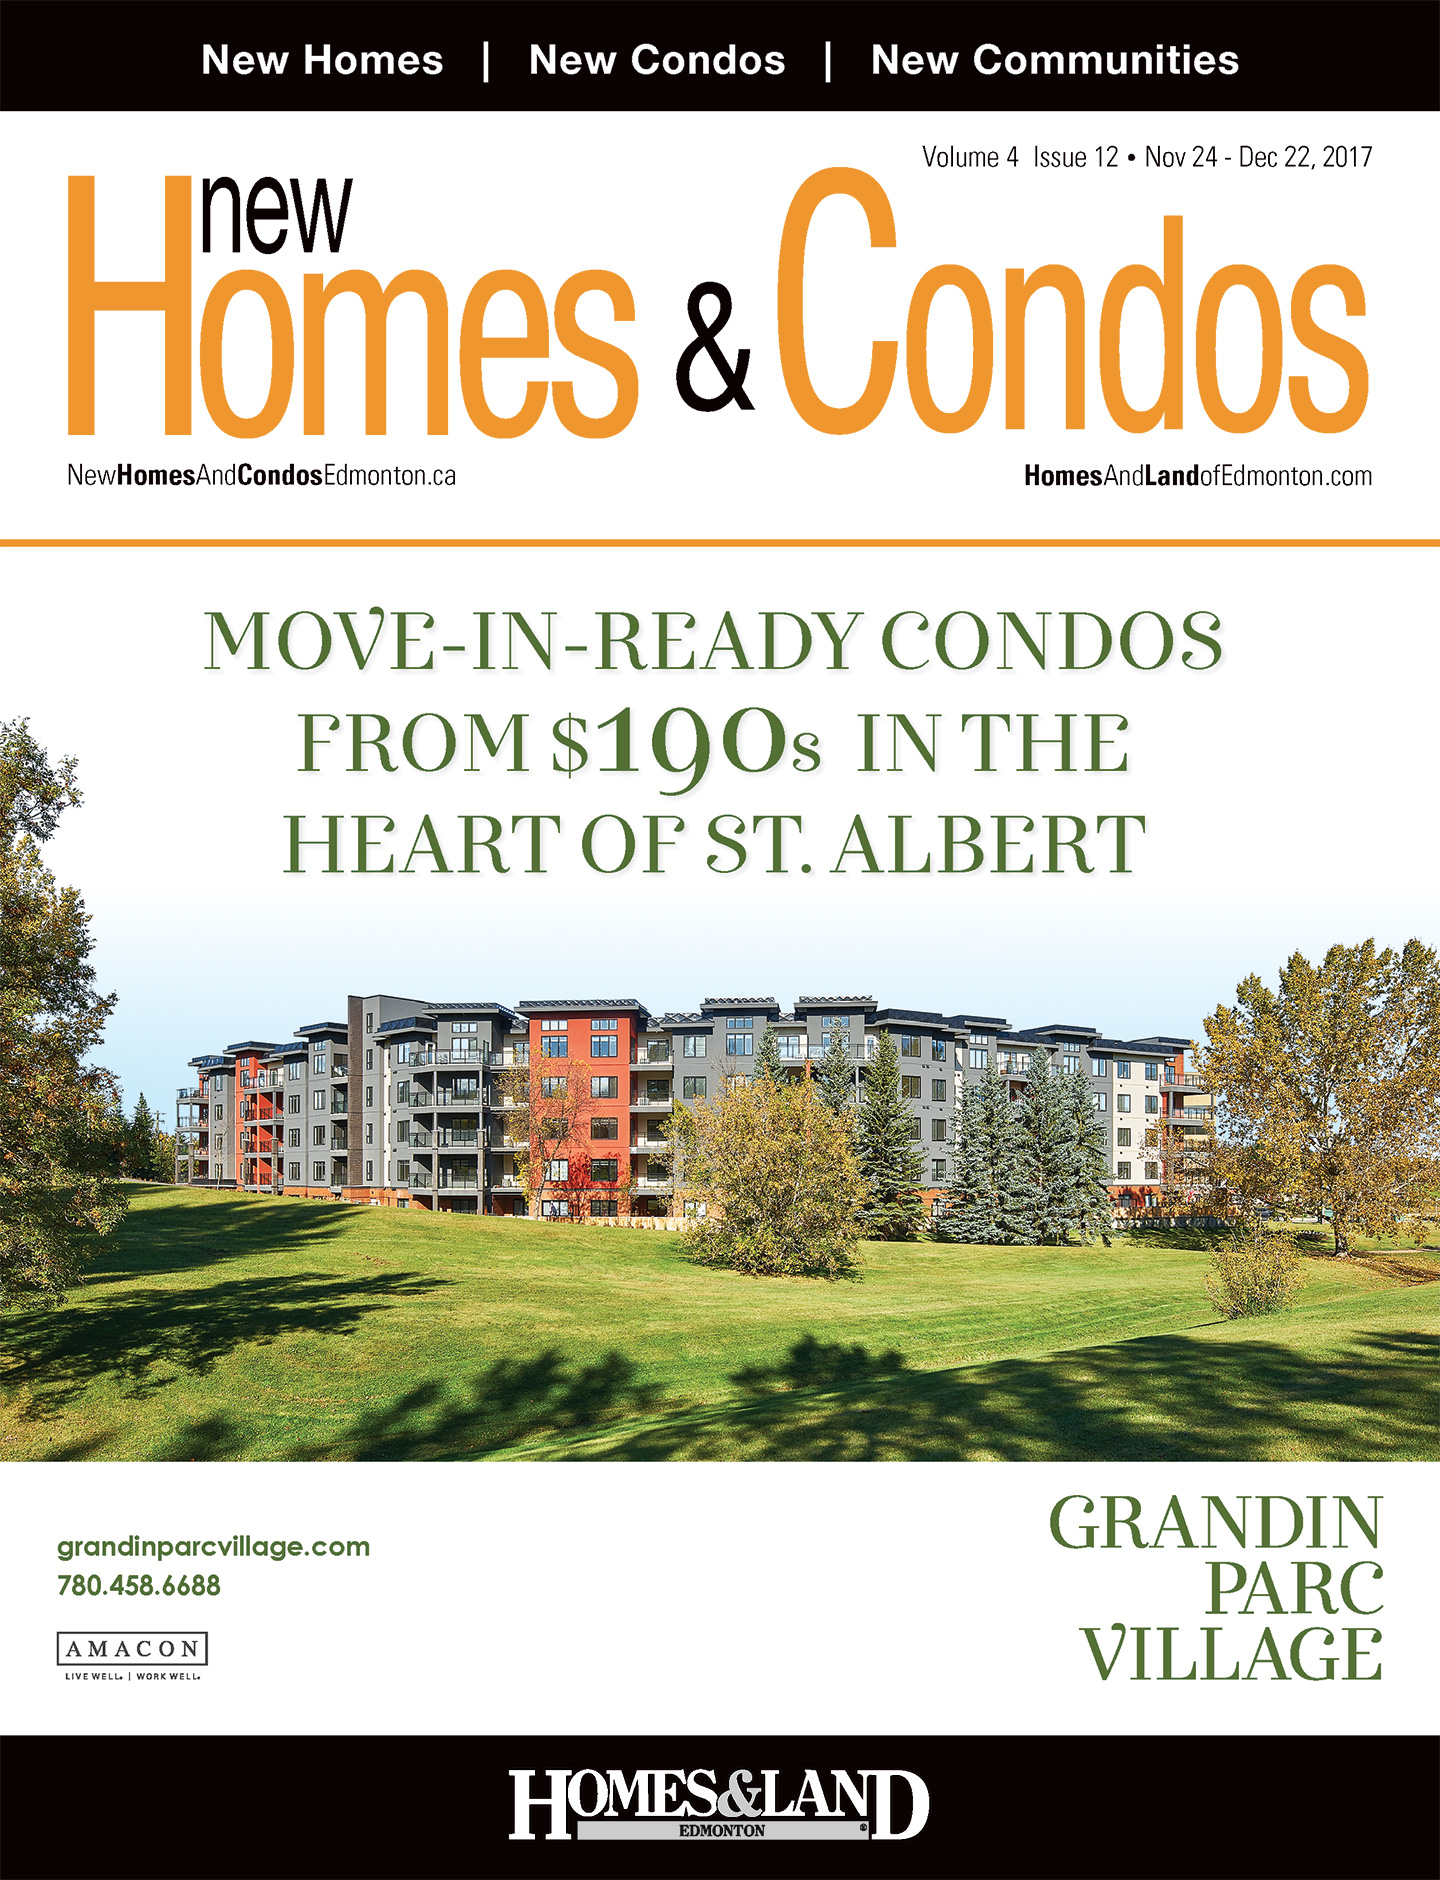 New Homes & Condos Edmonton Magazine Cover